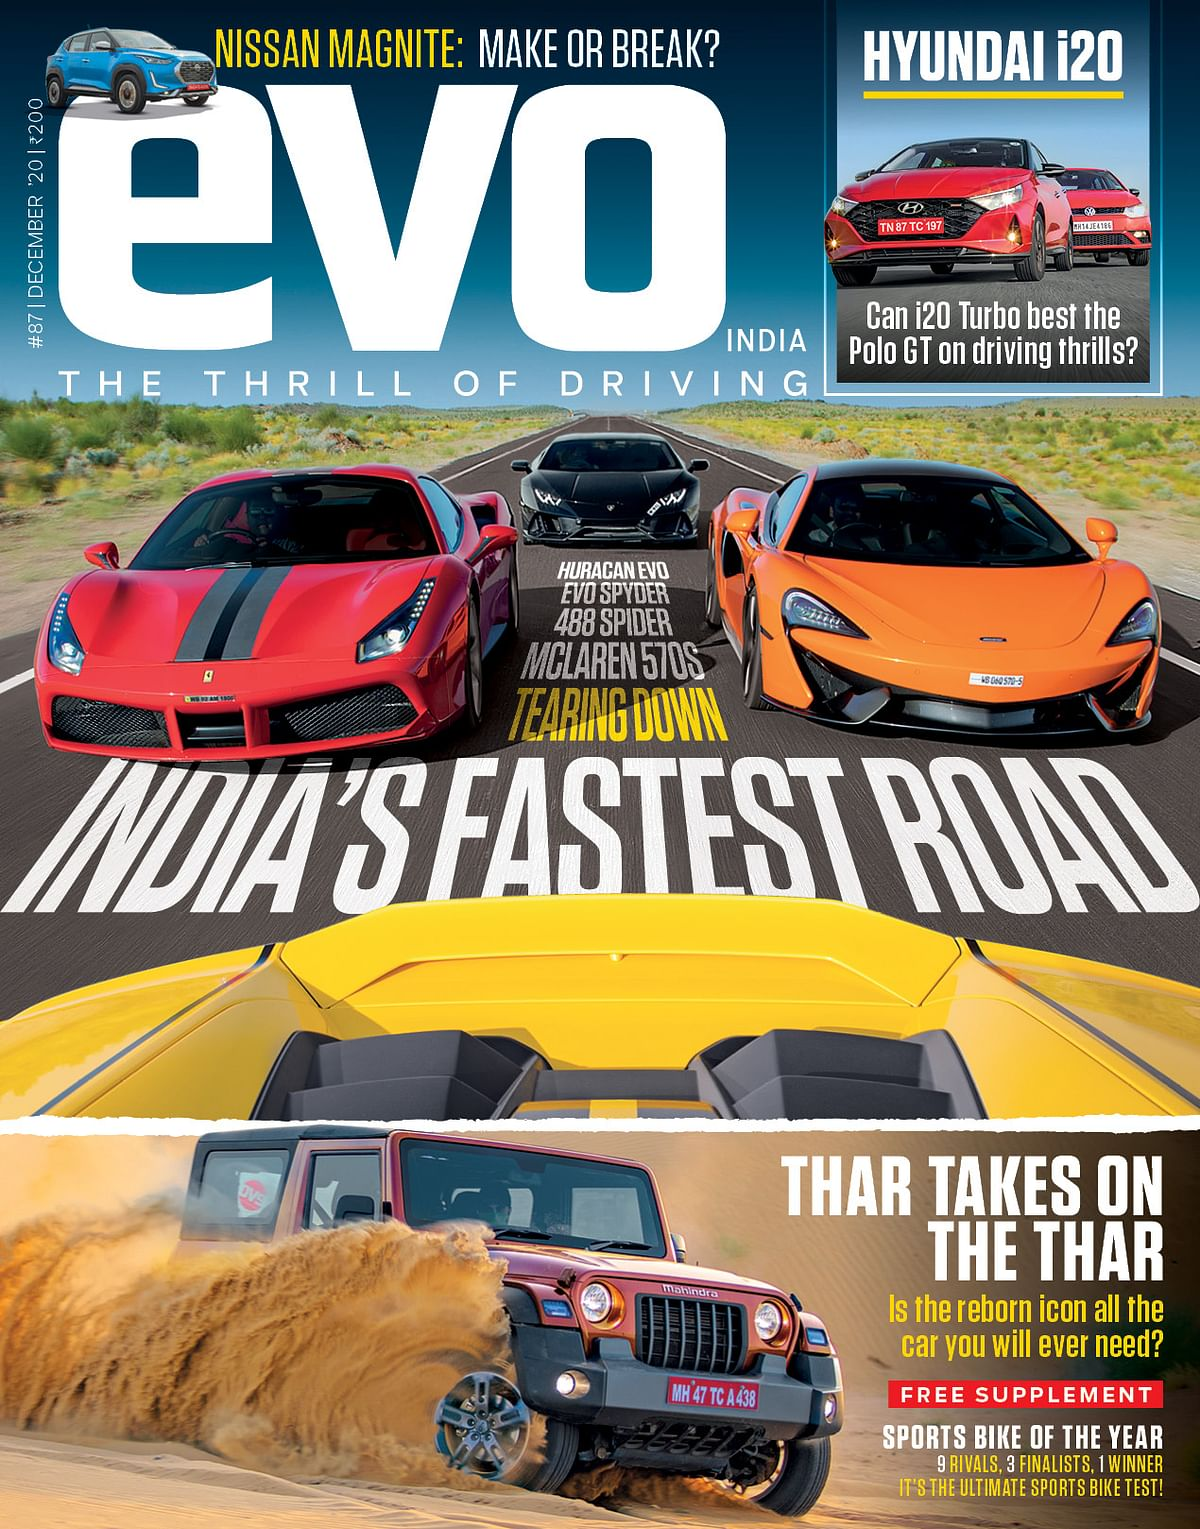 Discovering the fastest roads with the fastest cars